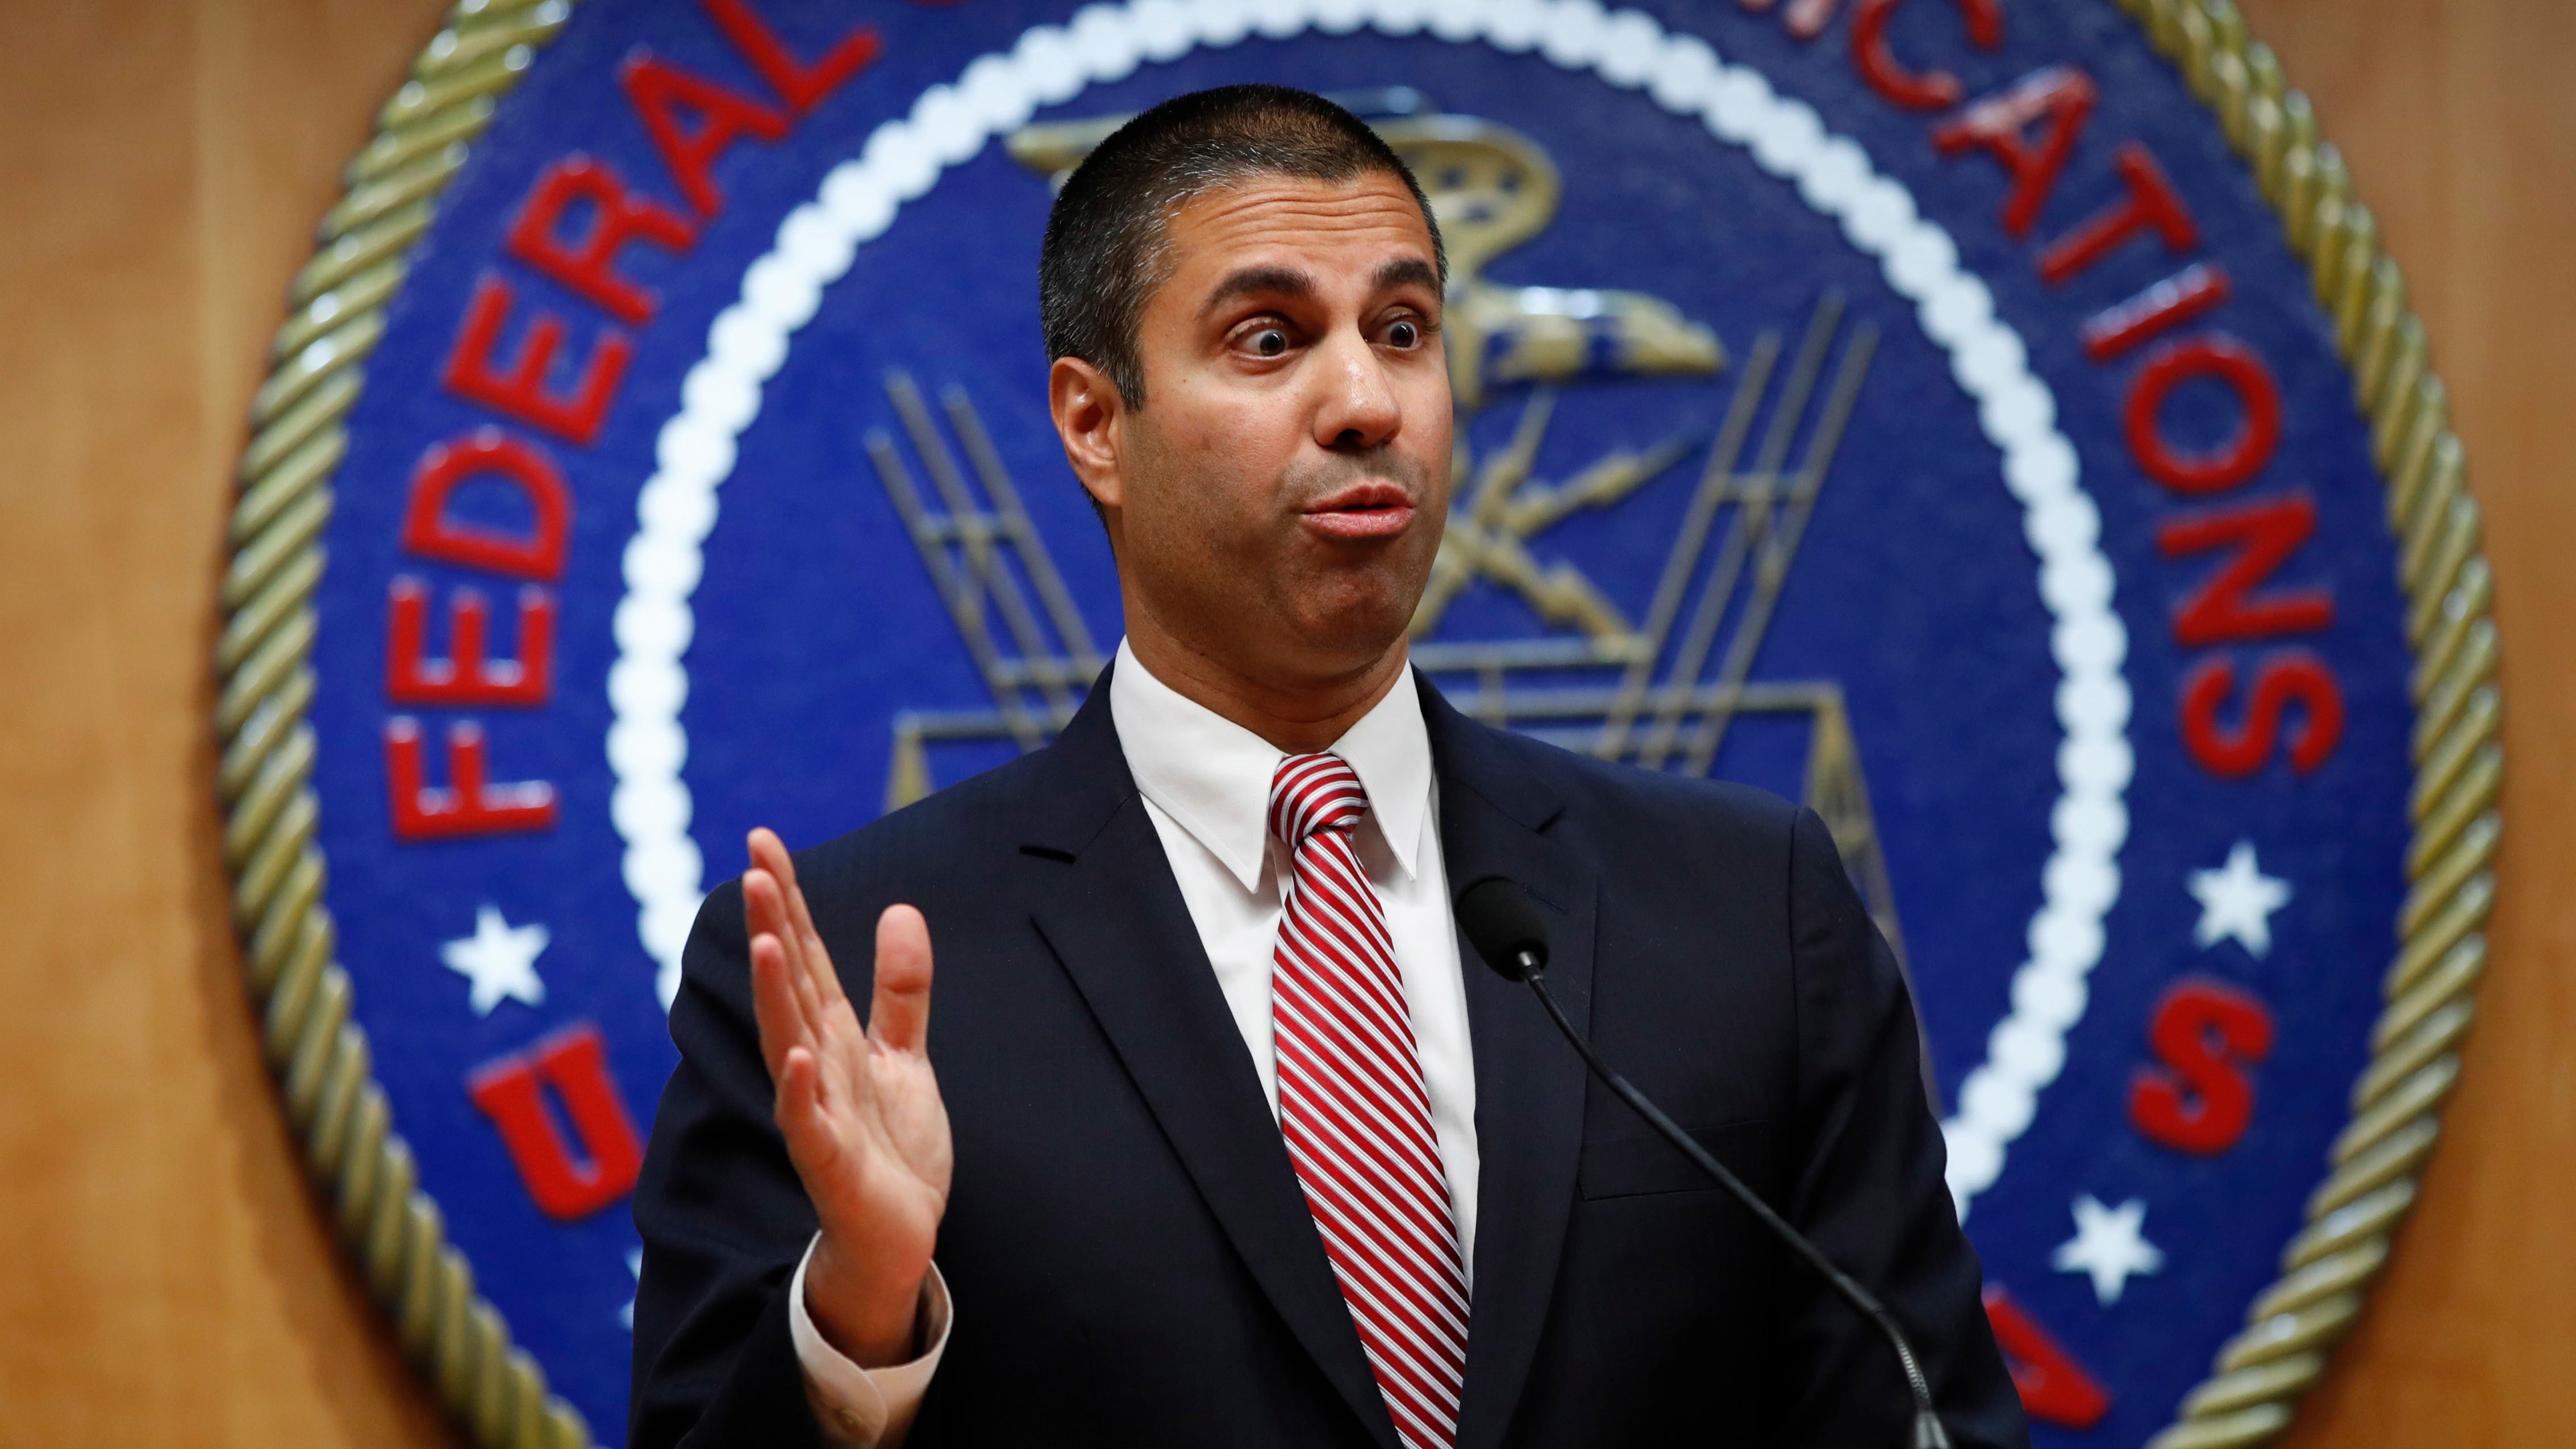 Loathsome Shill Ajit Pai Drops Out Of Planned CES Appearance